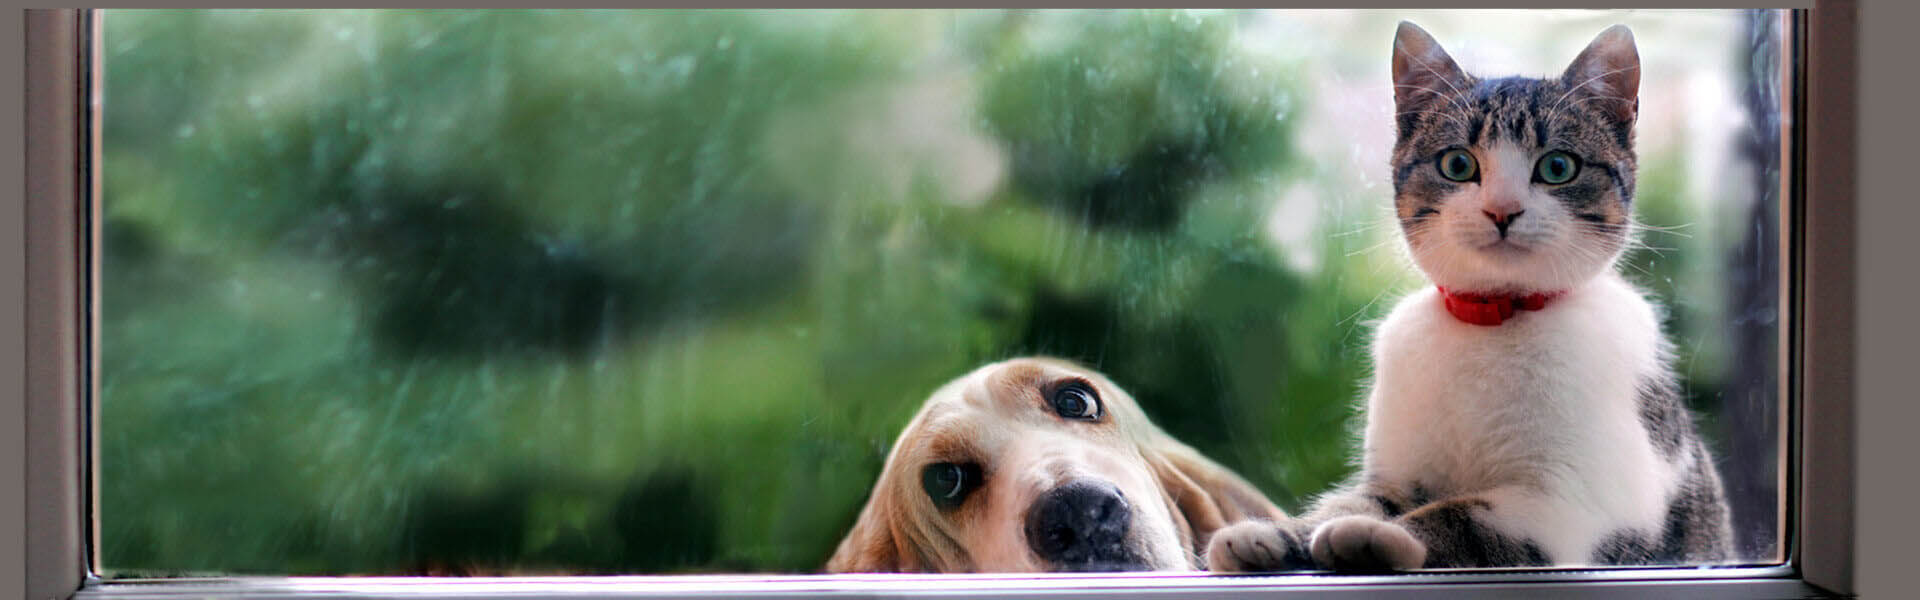 Give you and your pet's independence with Pet Door Products Sliding Glass doors